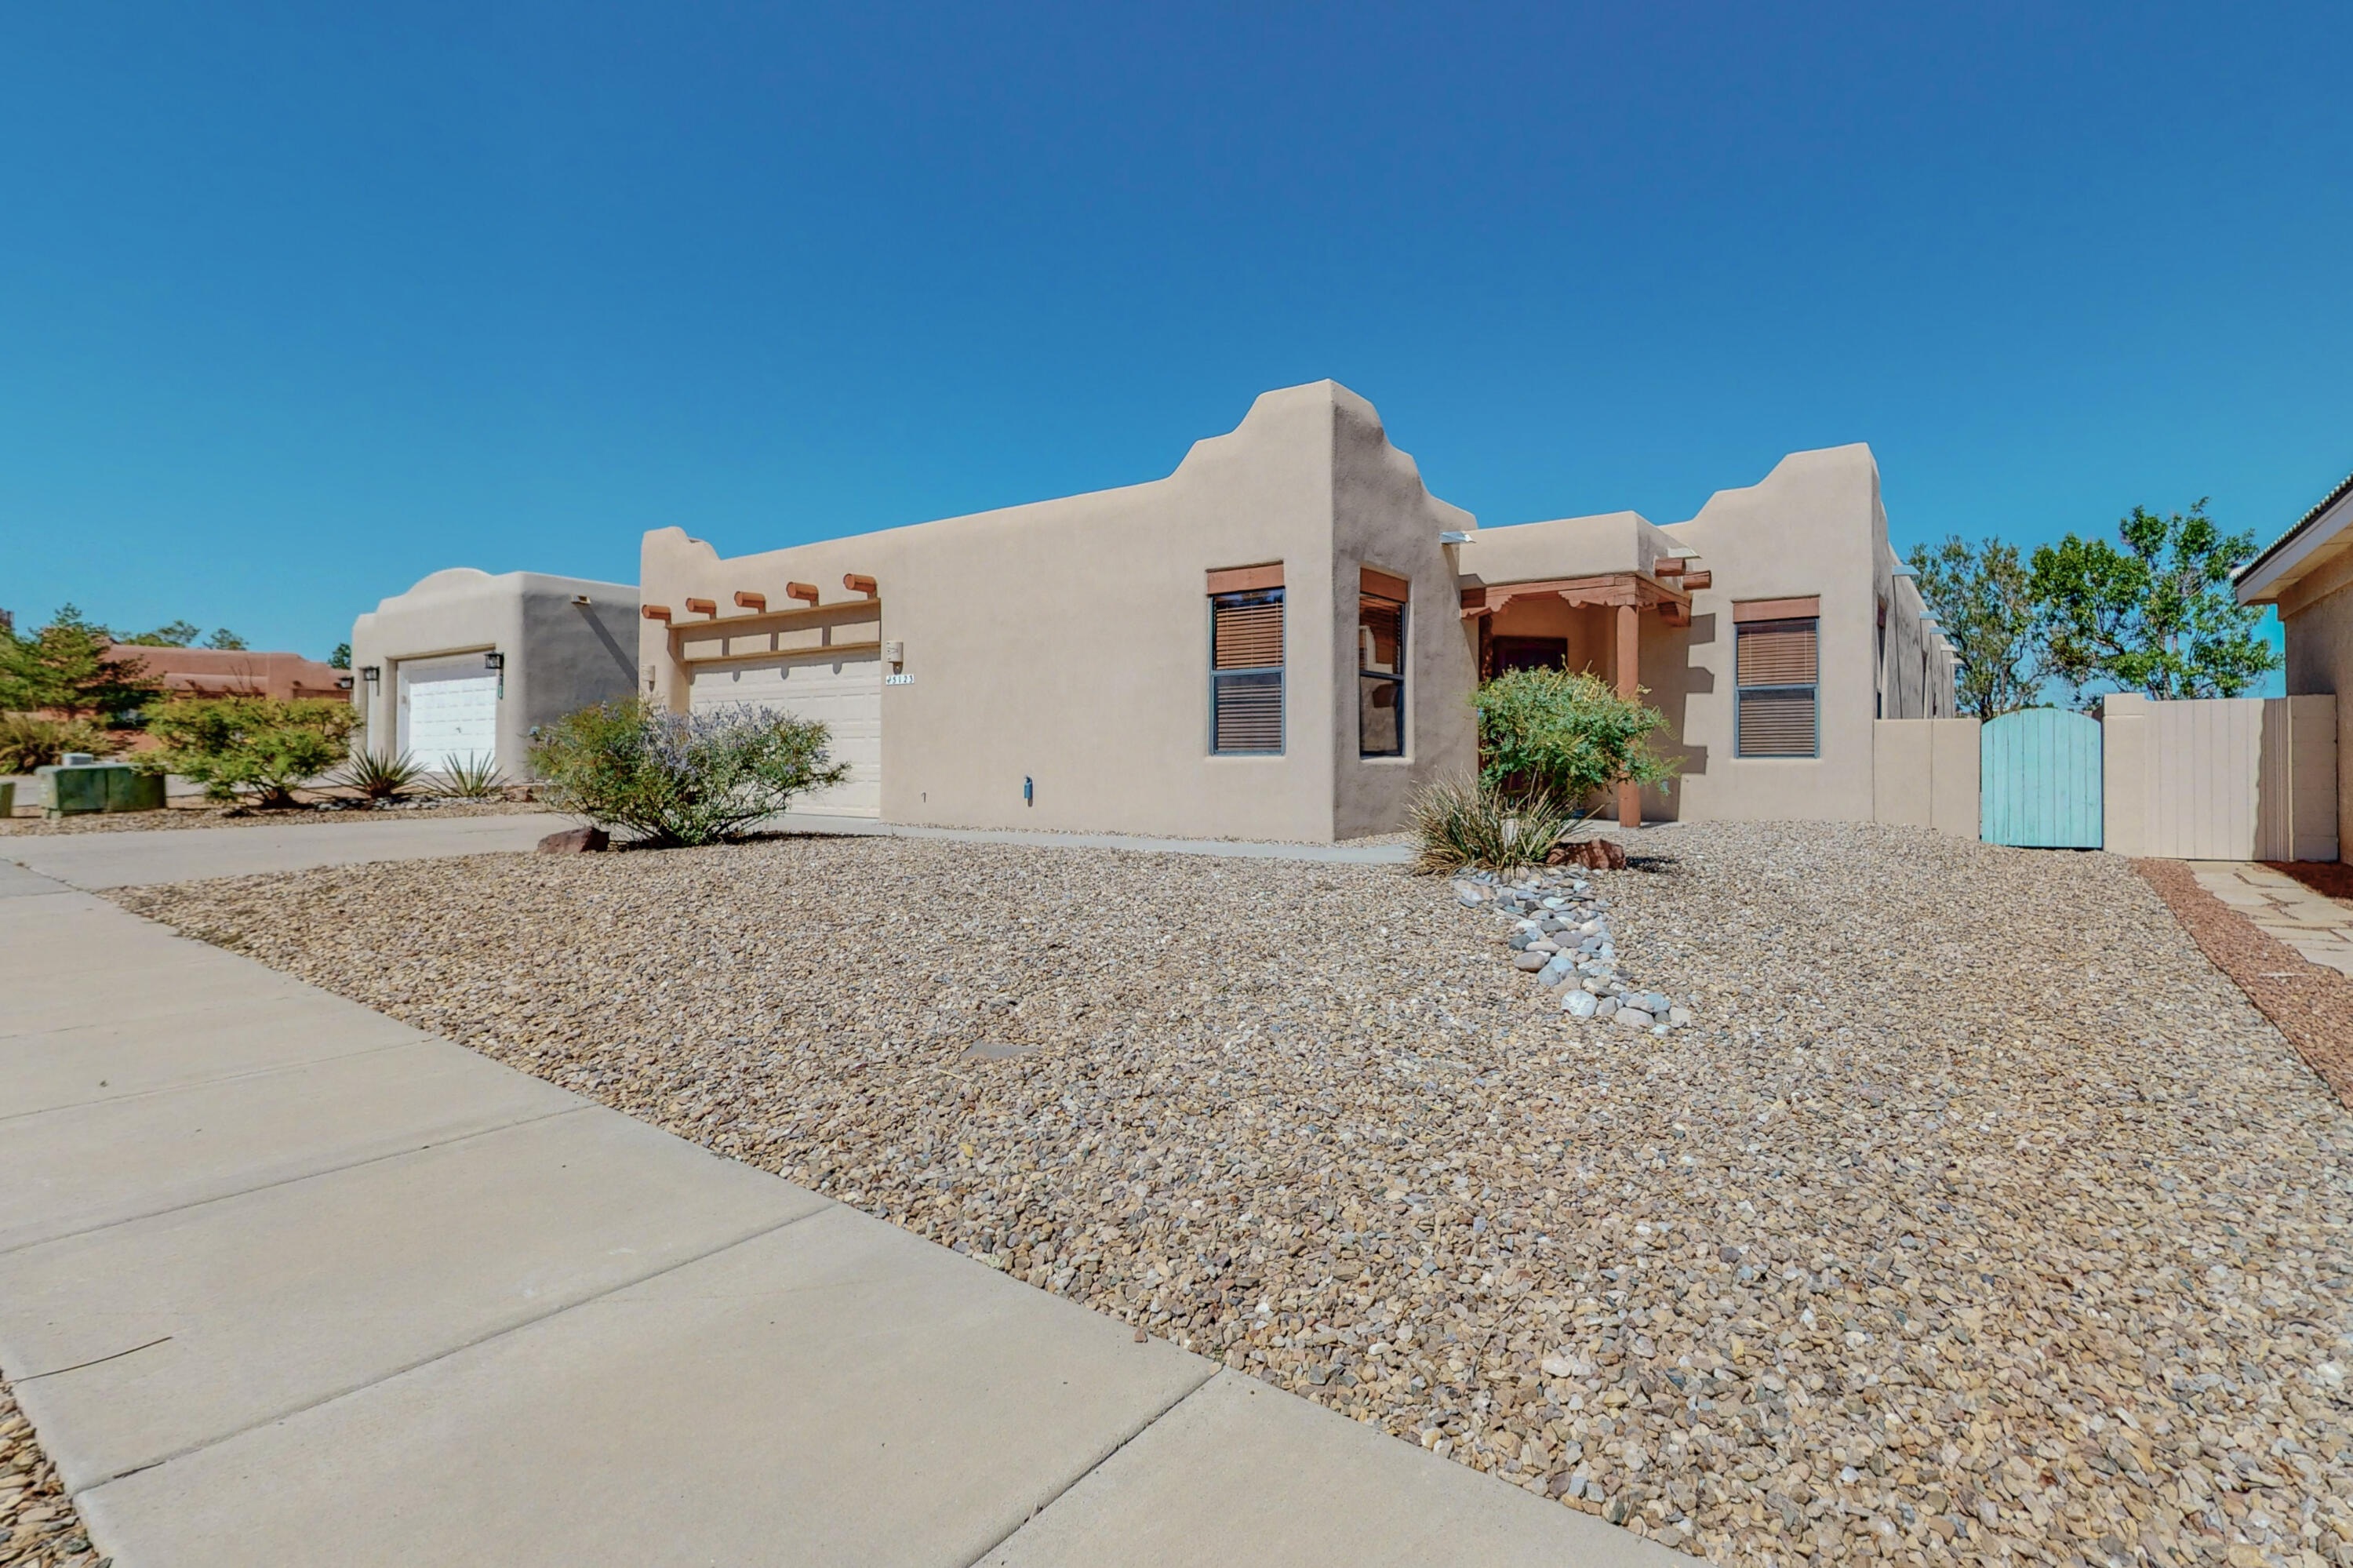 ***PRICE REDUCTION*** Make this custom southwestern gem located on a quiet cul-de-sac your new home! This 4bed/2bath home features a raised viga & latilla ceiling, corbel & adobe accents, and a gas kiva fireplace. The split bedroom design allows for master bedroom privacy. The solid wood doors, maple cabinets throughout, Italian glazed tile & custom designed security screen door reflect the quality of construction. The two fully enclosed storage areas located in the garage leave plenty of space for parking. The low maintenance back yard backs to open space. New evaporative cooler with an upgraded 3/4-ton HP motor, newer roof (2017), and stucco (2015). Make this house your HOME!